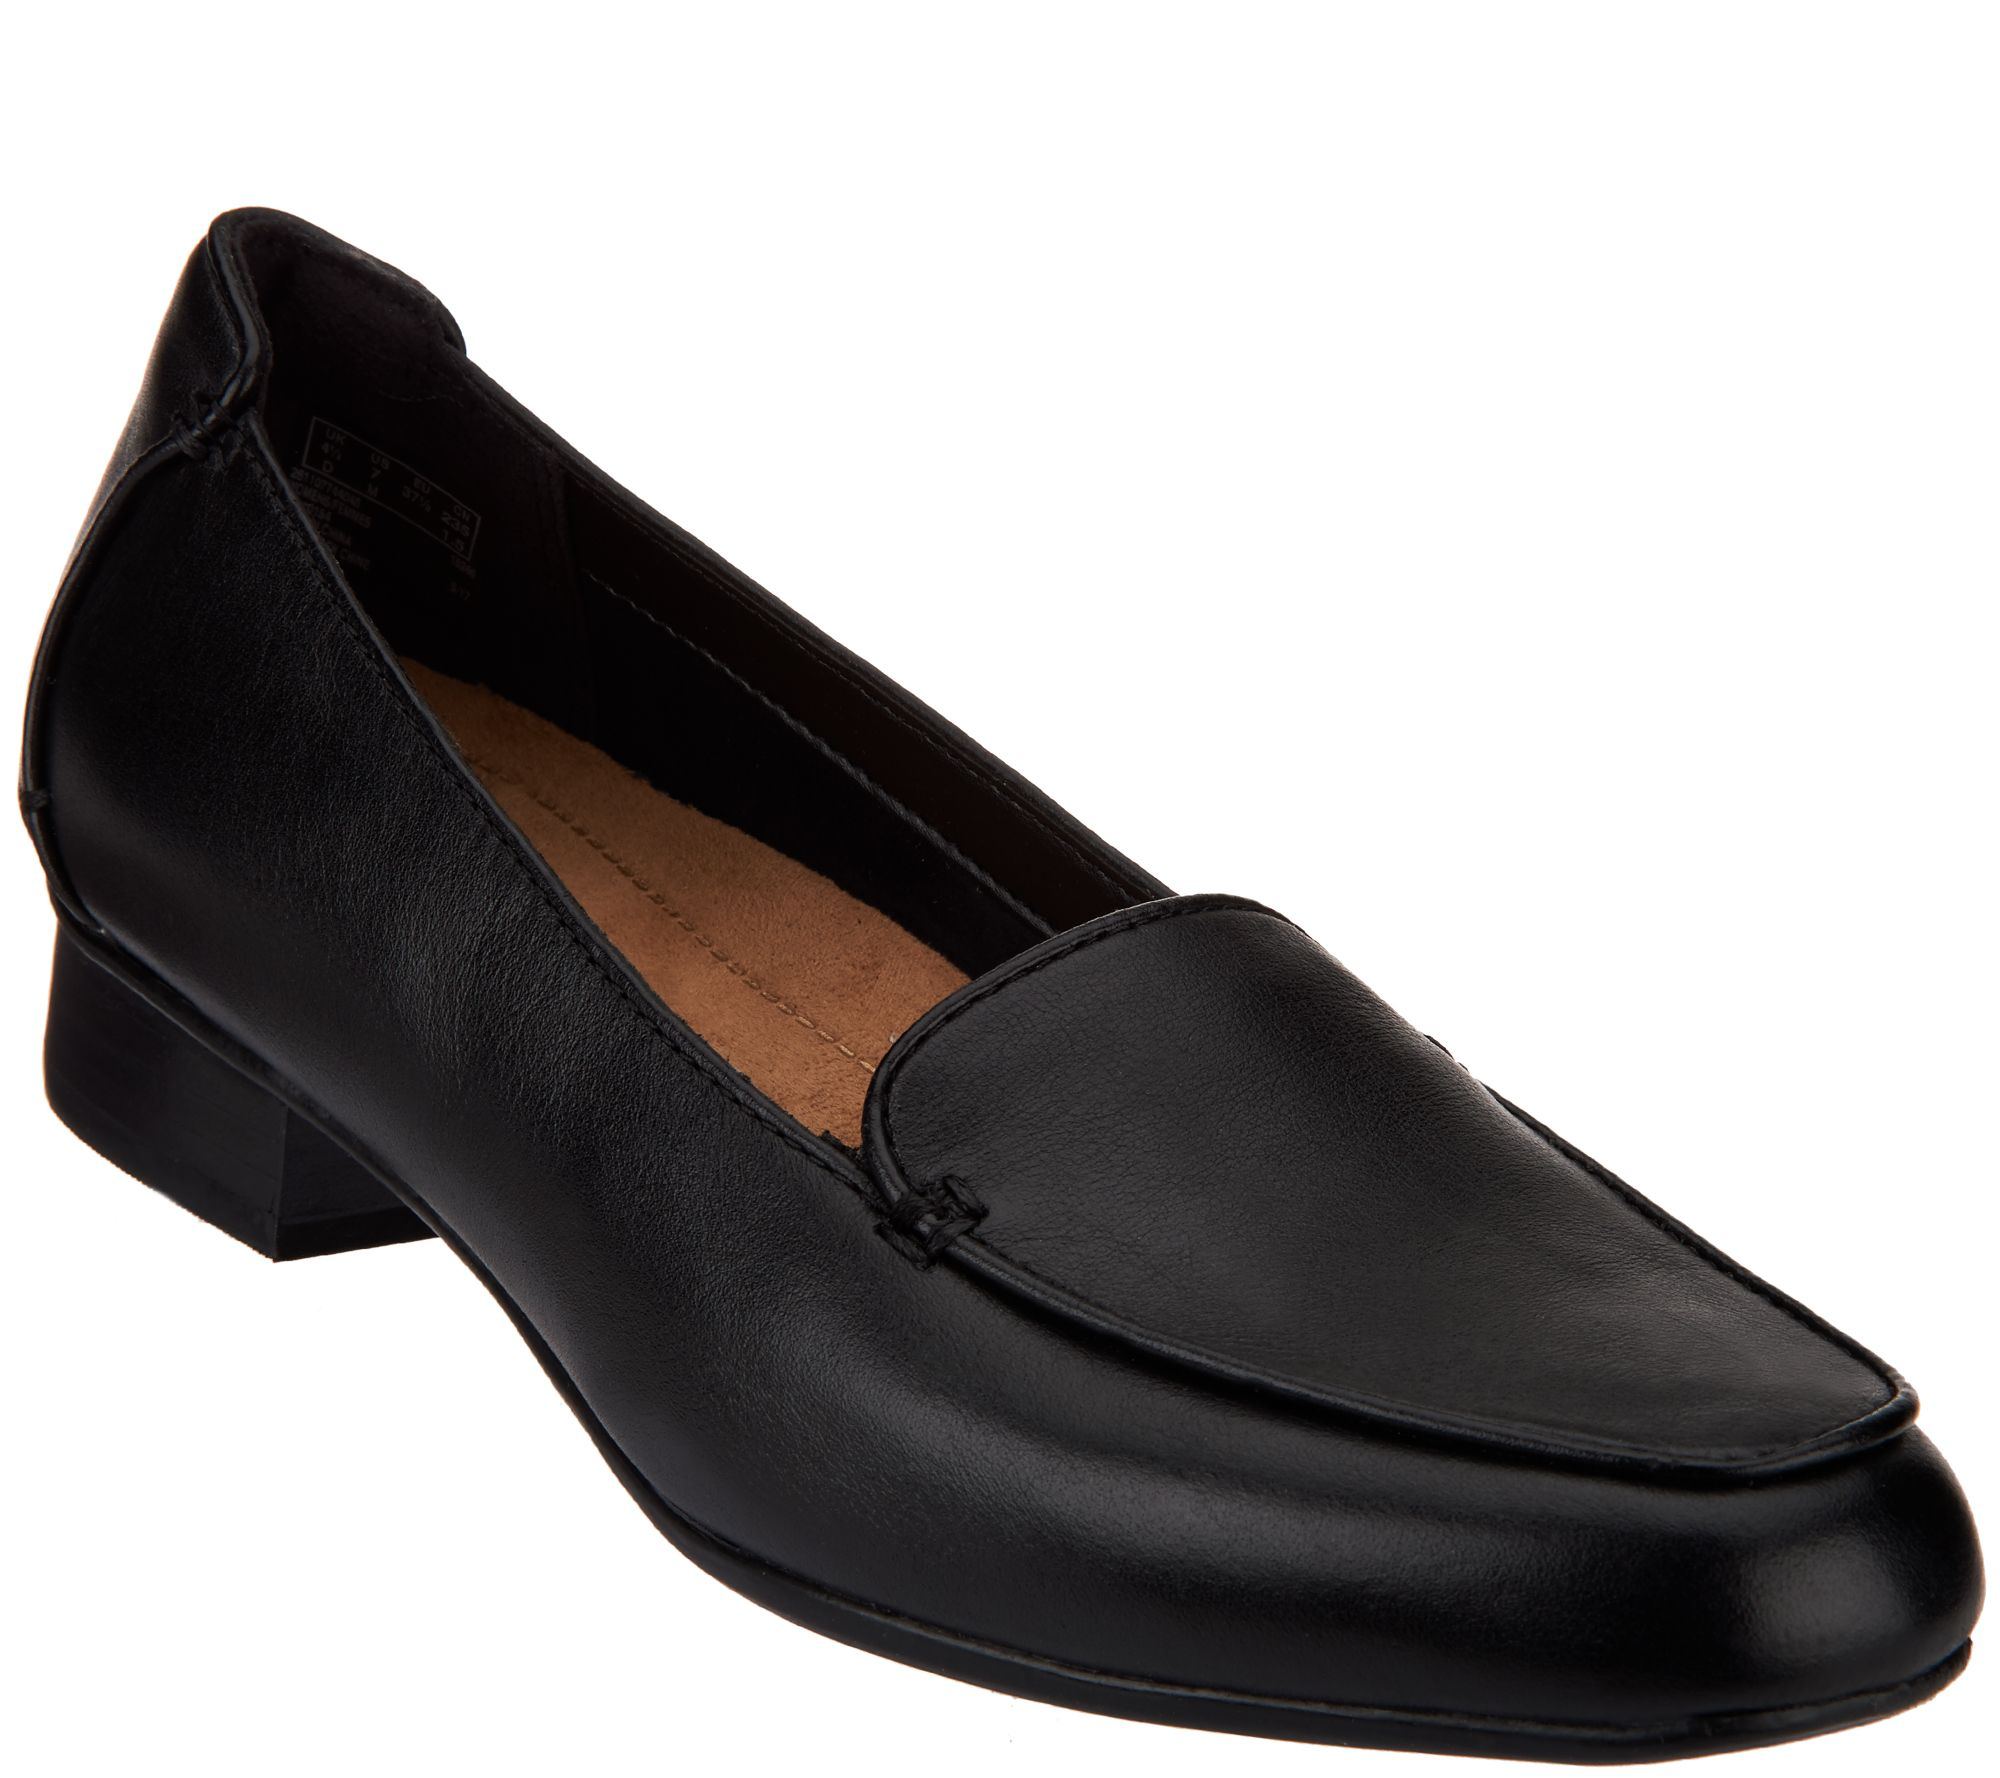 675d1b50605 Clarks Artisan Leather Slip-on Loafers - Keesha Luca - Page 1 — QVC.com